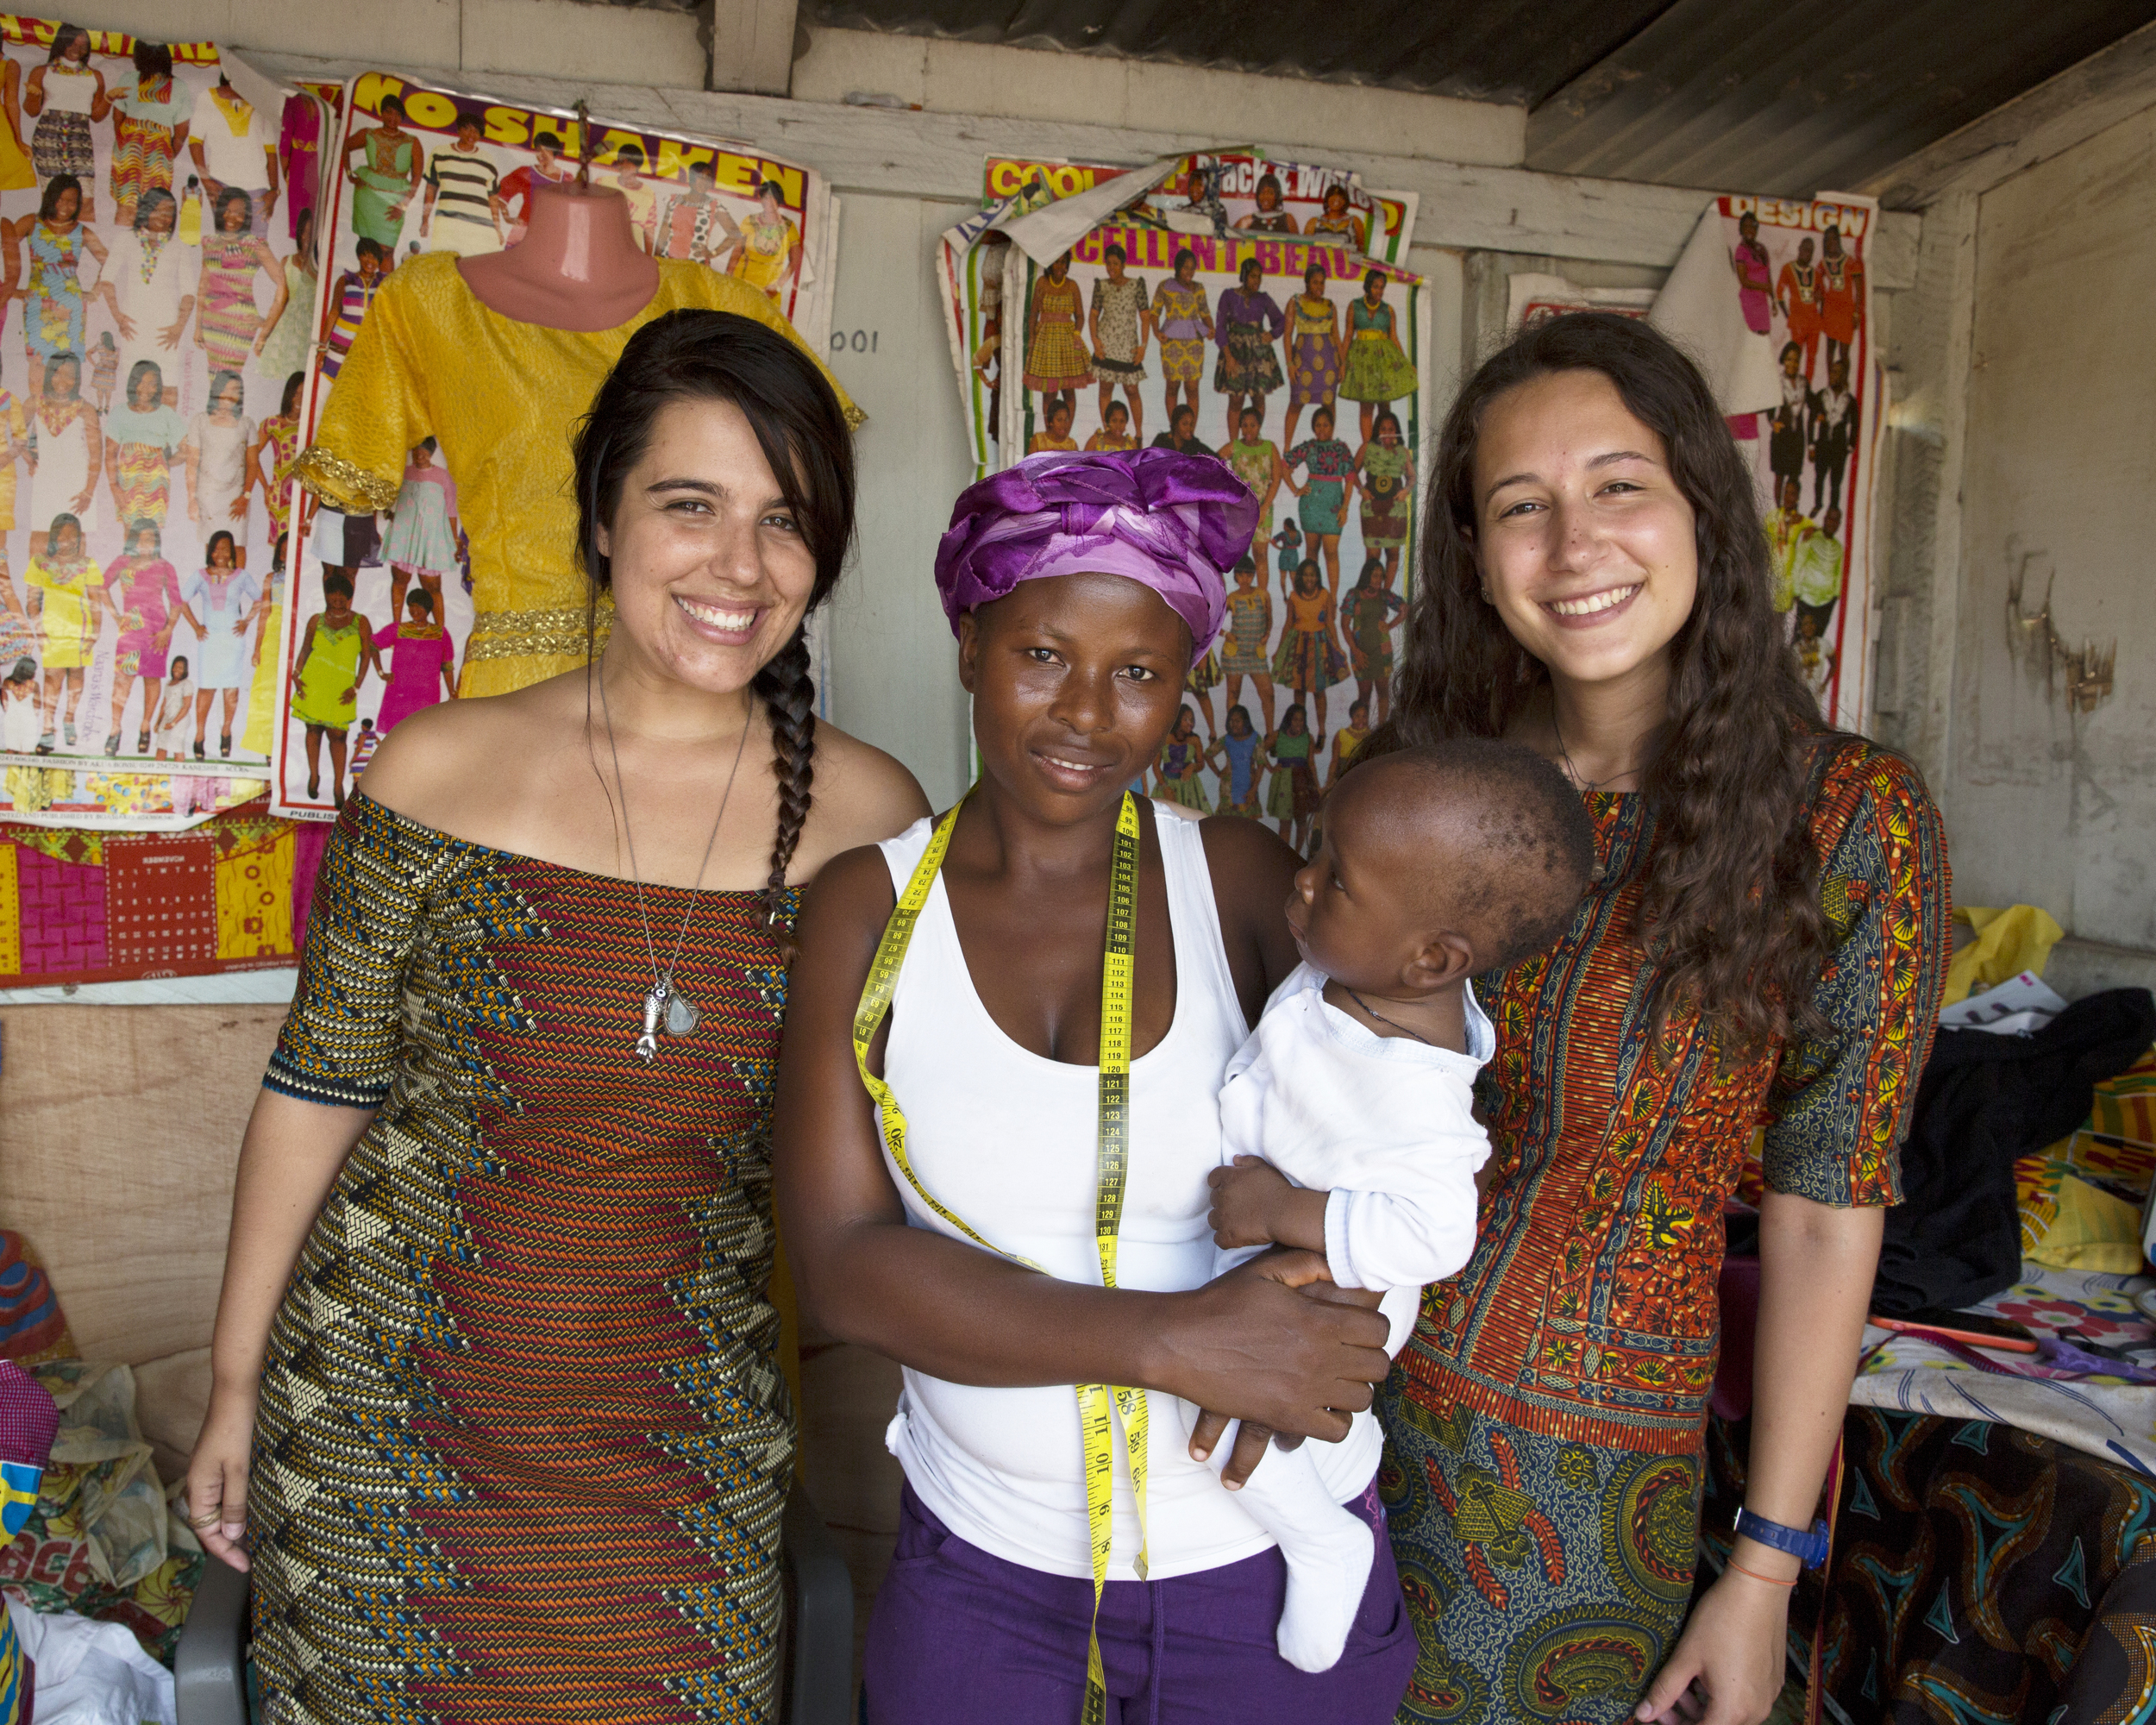 Mariana and I pose for a photo with Mary and her son while wearing our beautiful new dresses.